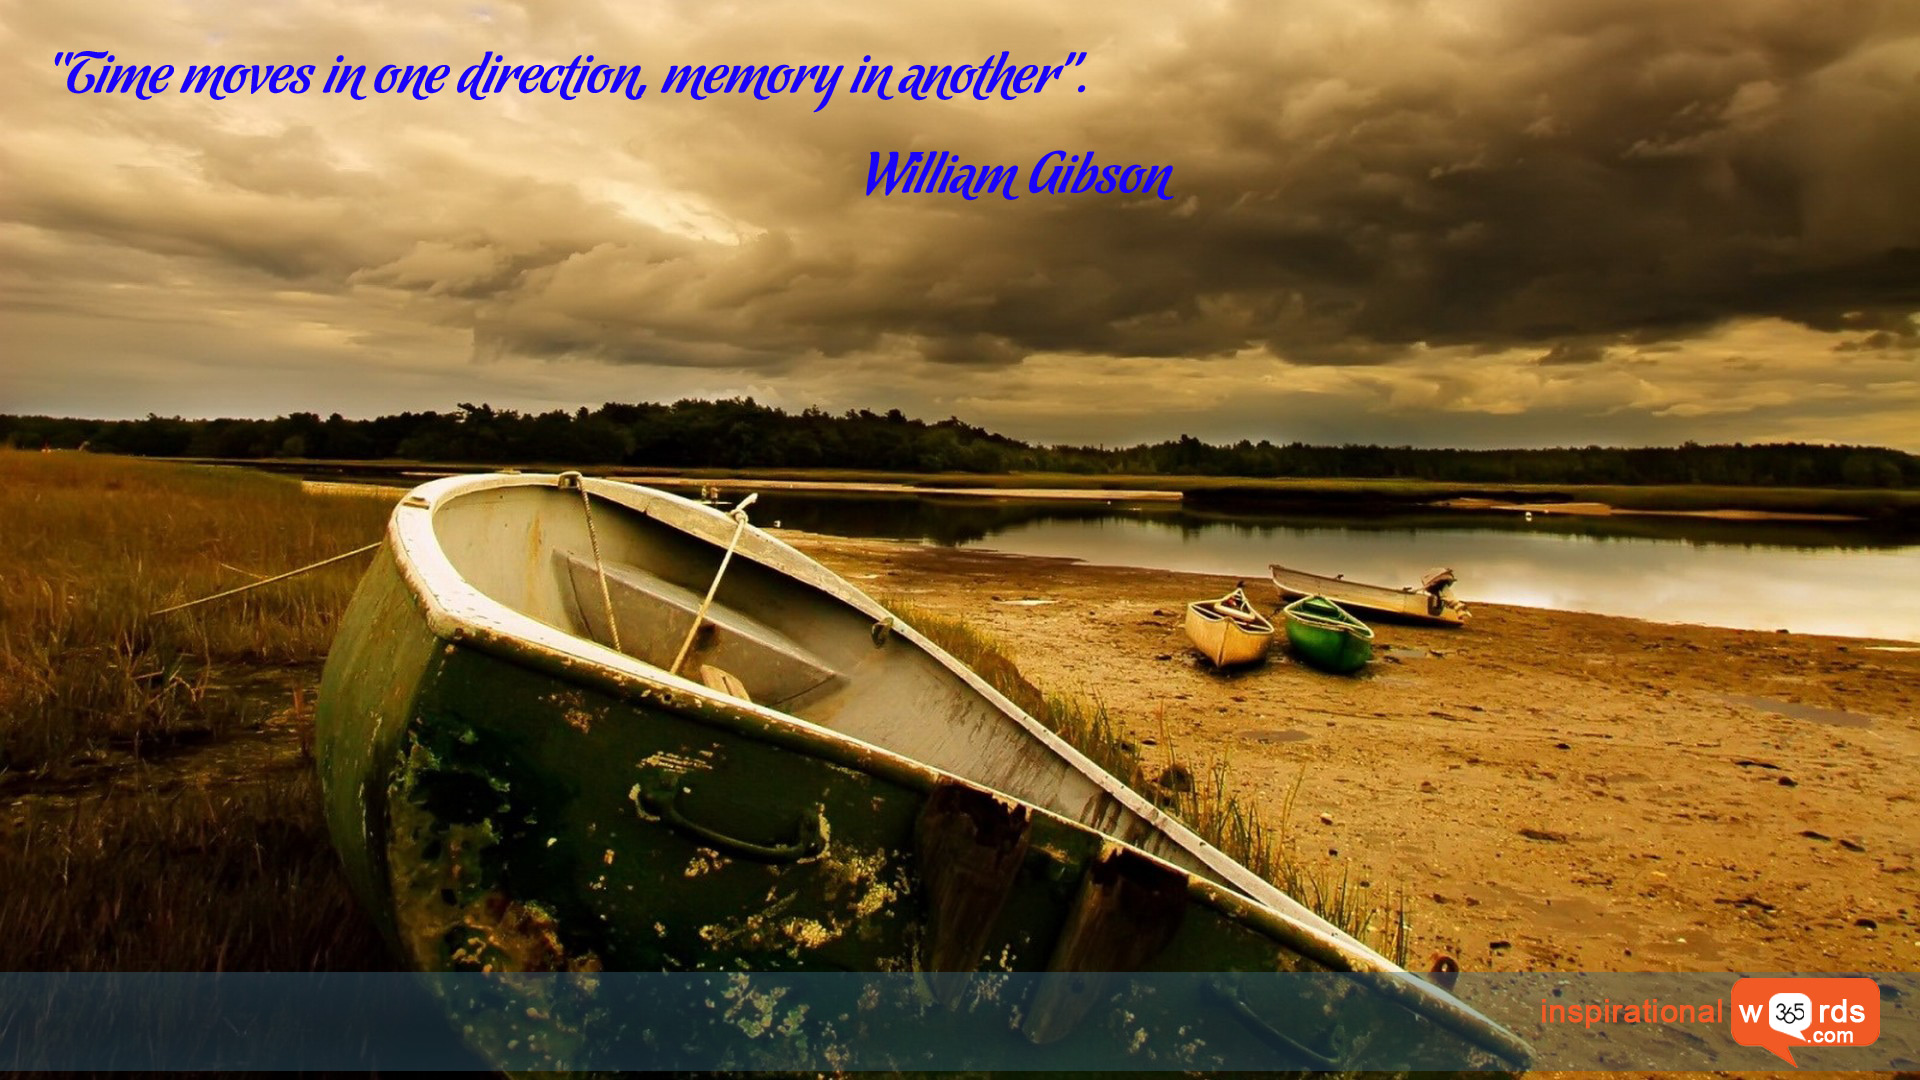 Inspirational Wallpaper Quote by William Gibson